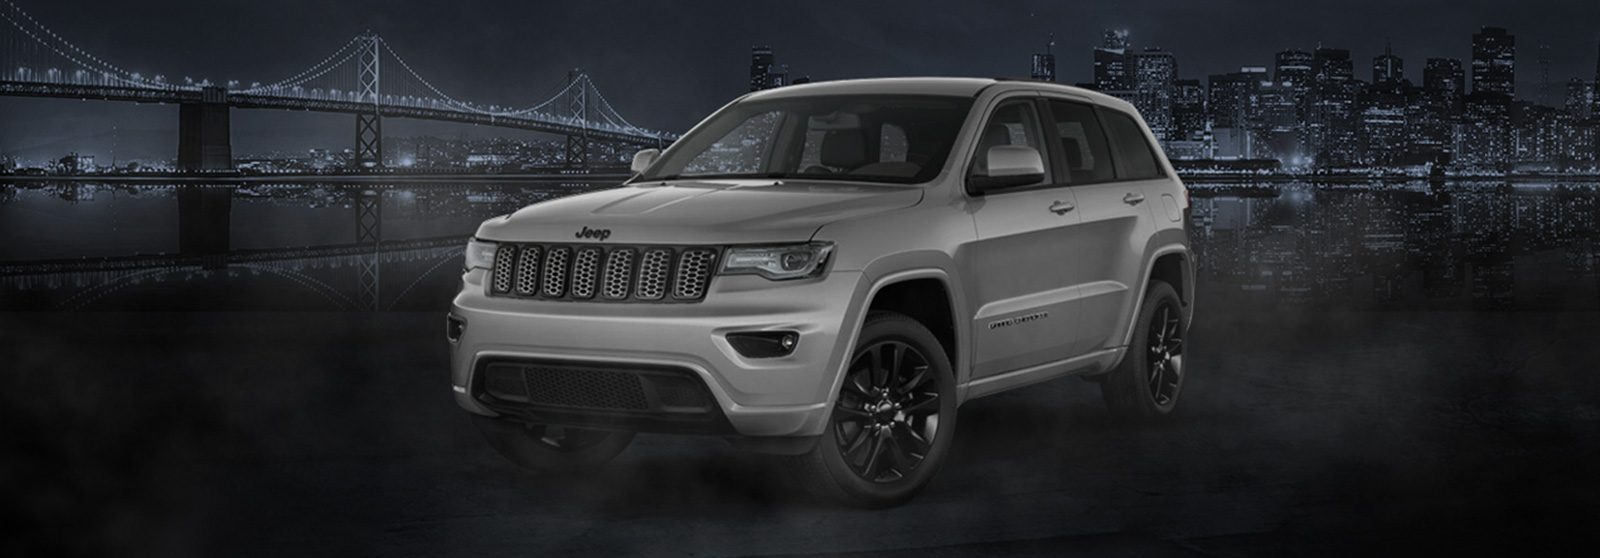 2017 jeep grand cherokee release date 2016 2017 vision. Black Bedroom Furniture Sets. Home Design Ideas